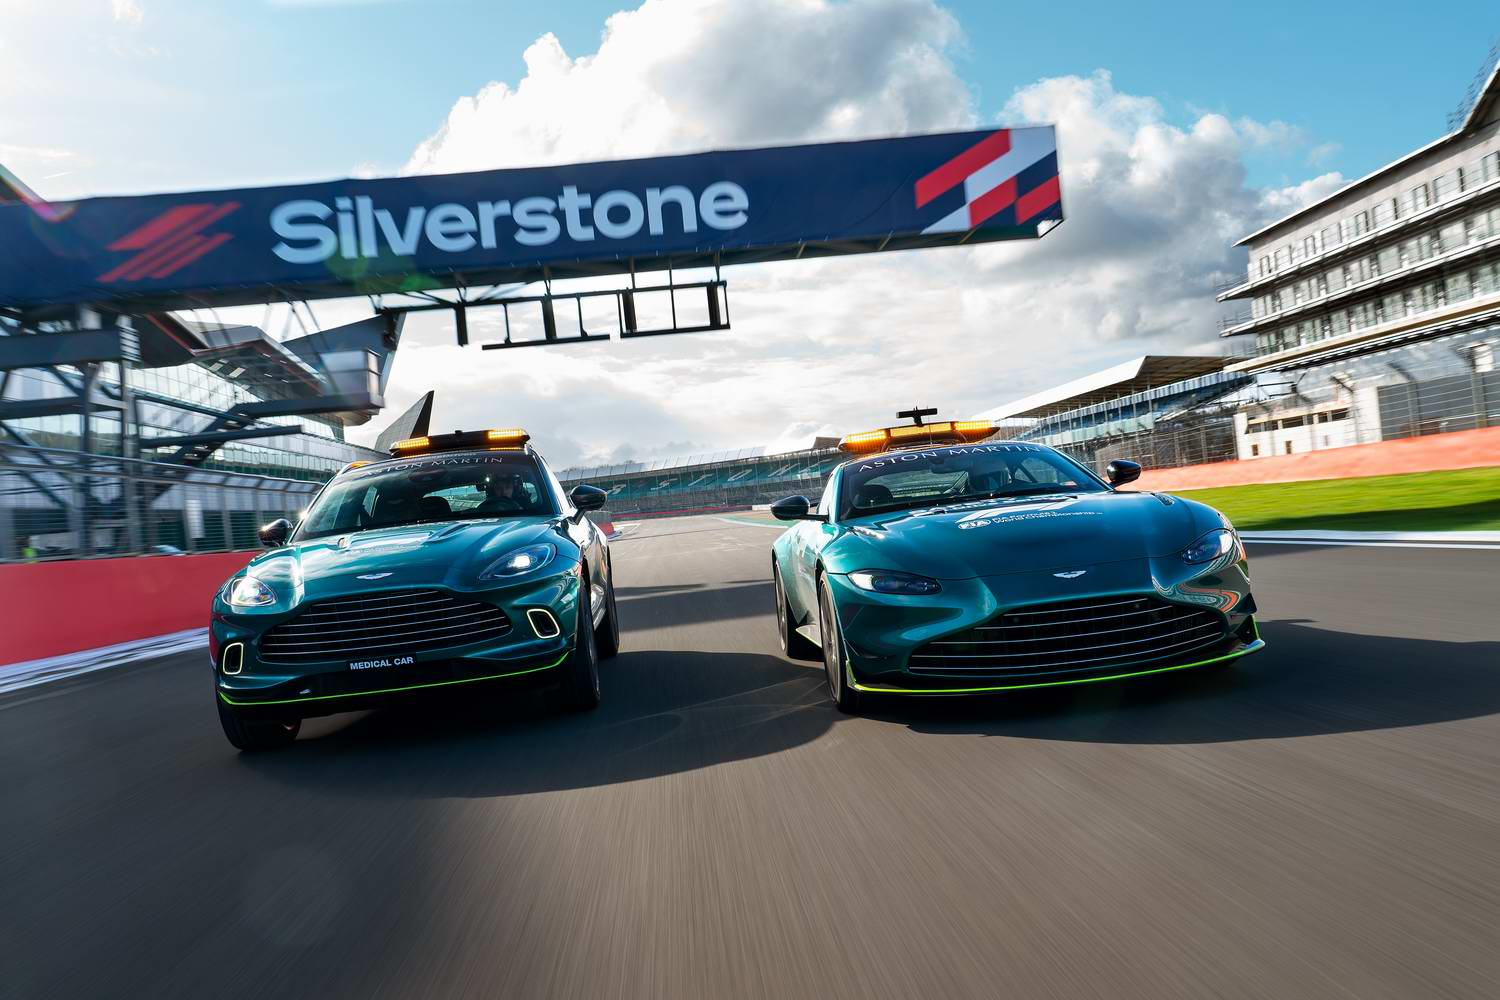 Car News   Aston takes over F1 safety and medical car duties   CompleteCar.ie